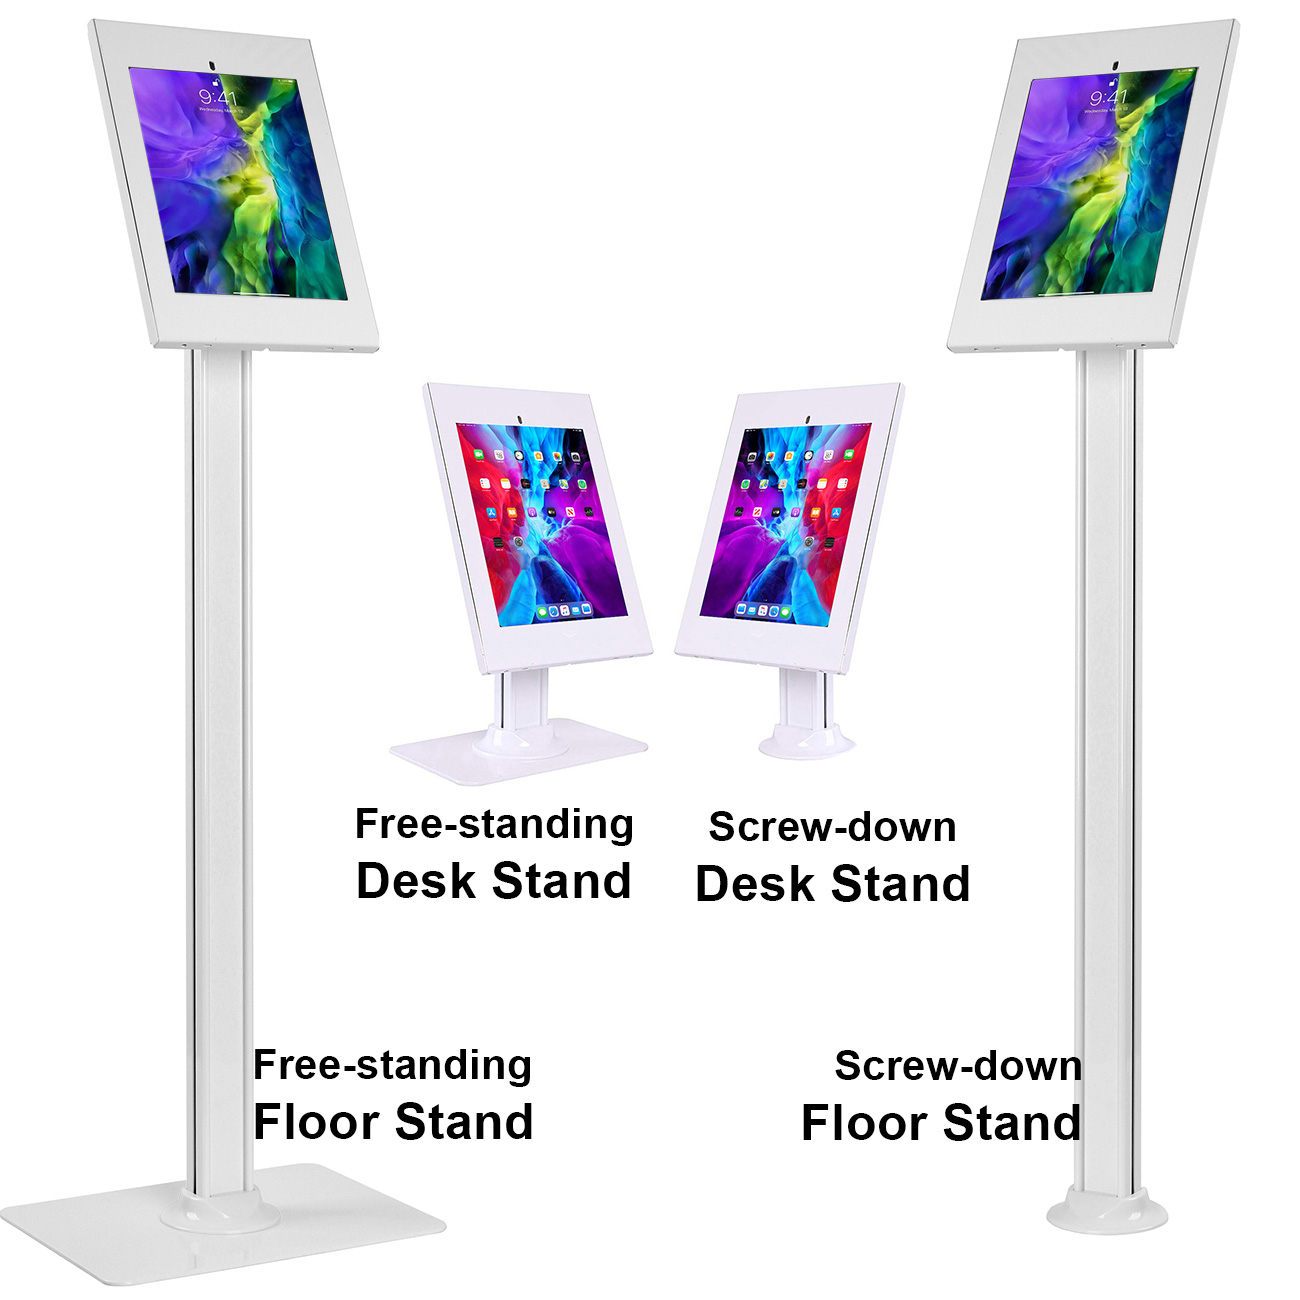 2600-series anti-theft secure iPad stand